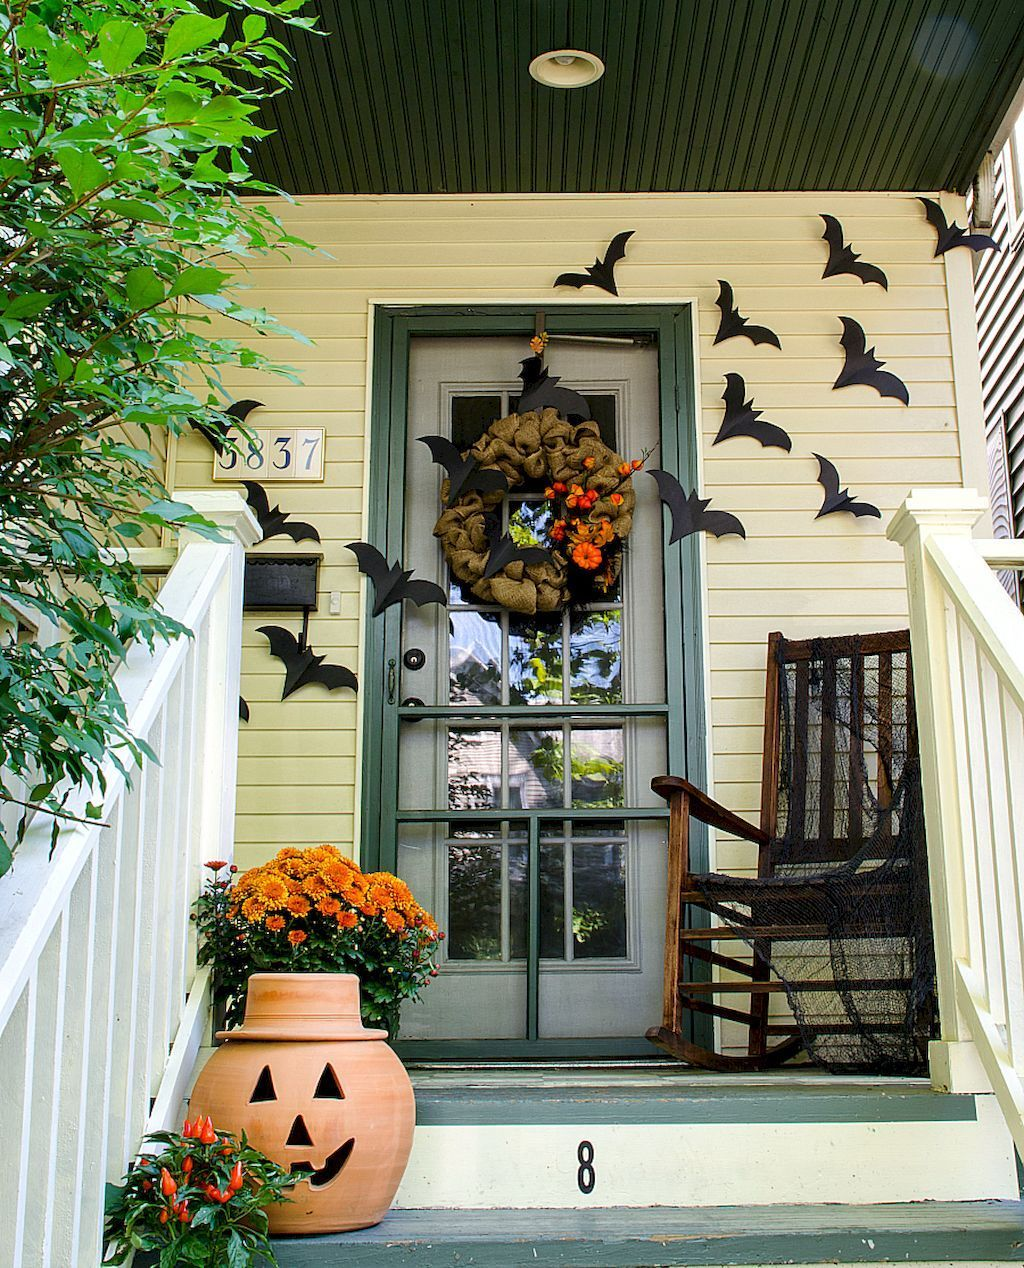 35 DIY Fall Decor Ideas for Small Porch #smallporchdecorating